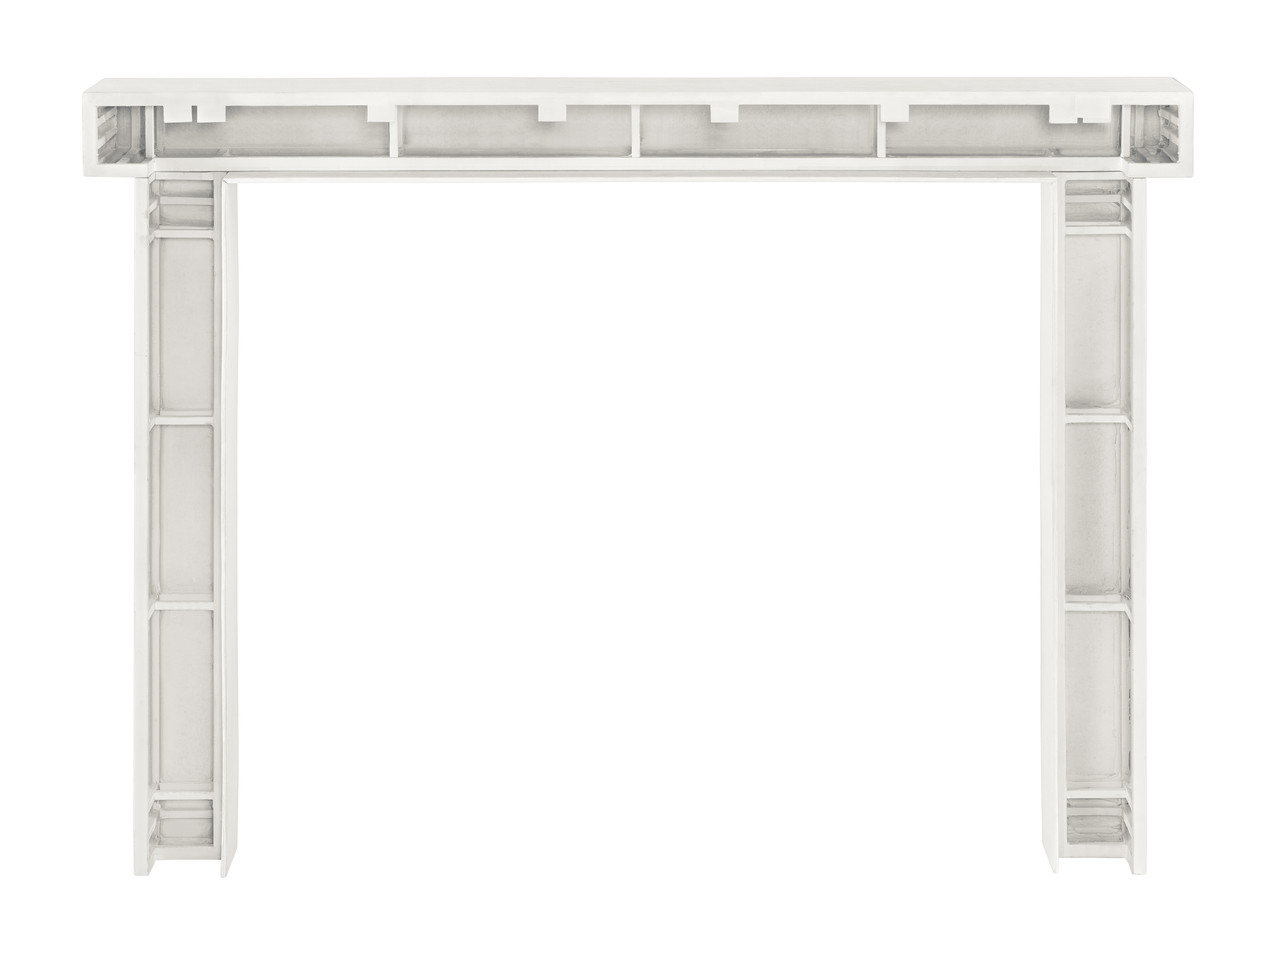 Zachary Non-Combustible Fireplace Mantel Surround Salt (Back View)